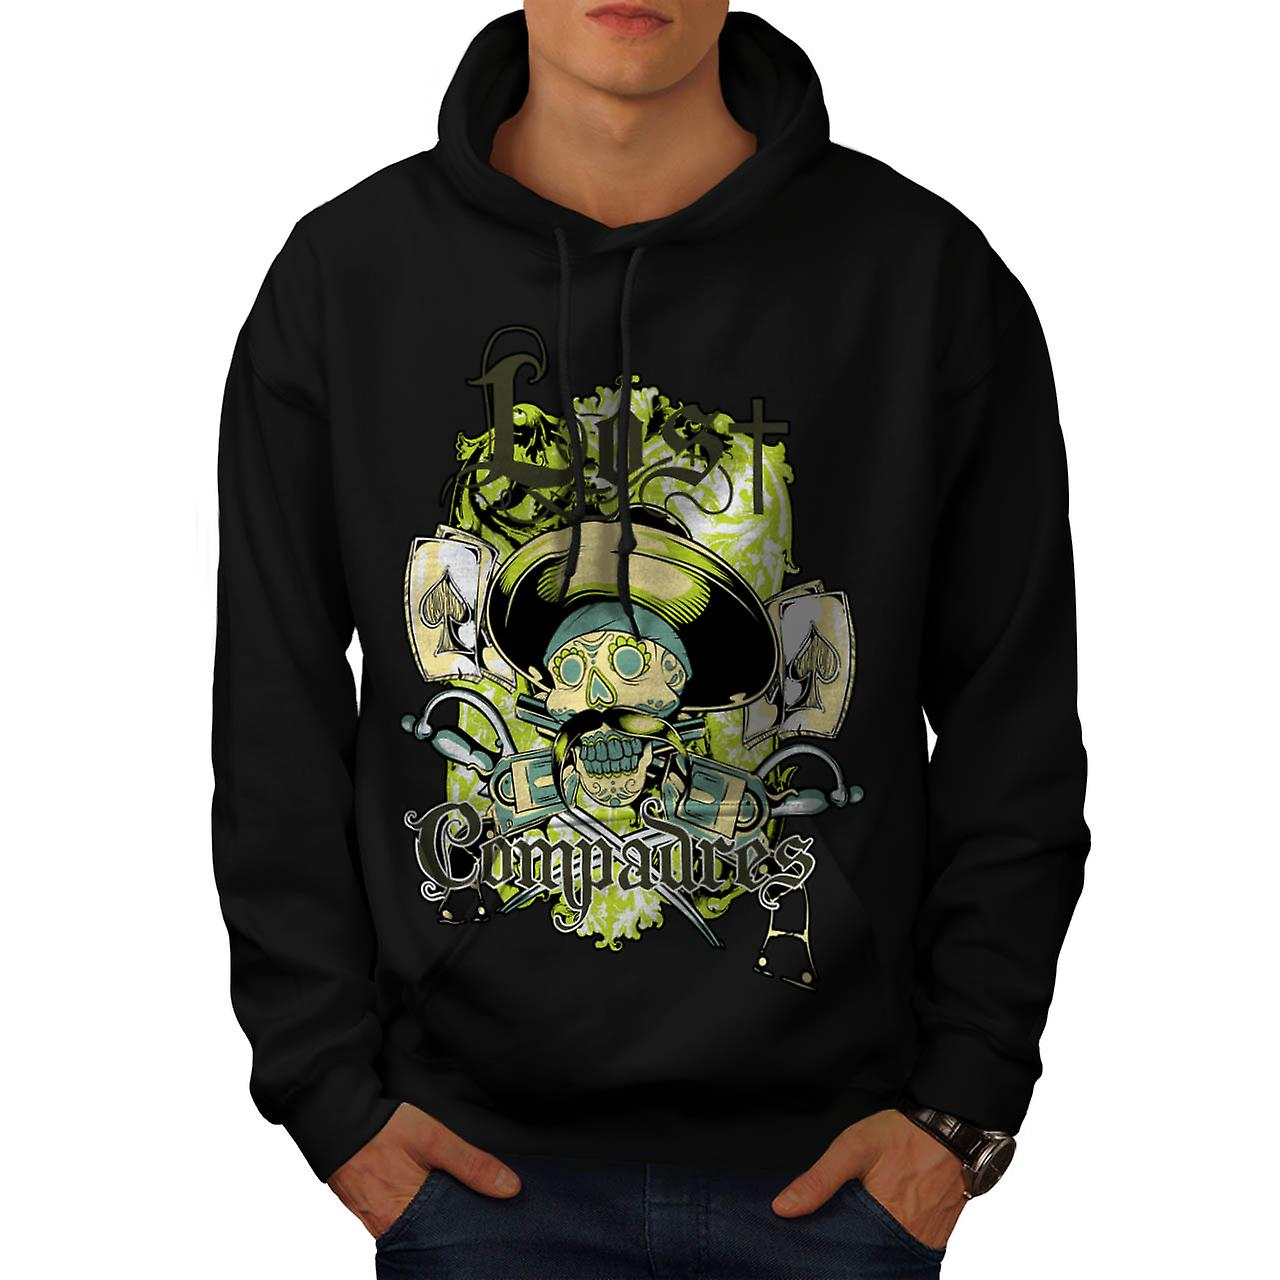 Lost Compadres Team Mexico Man Men Black Hoodie | Wellcoda